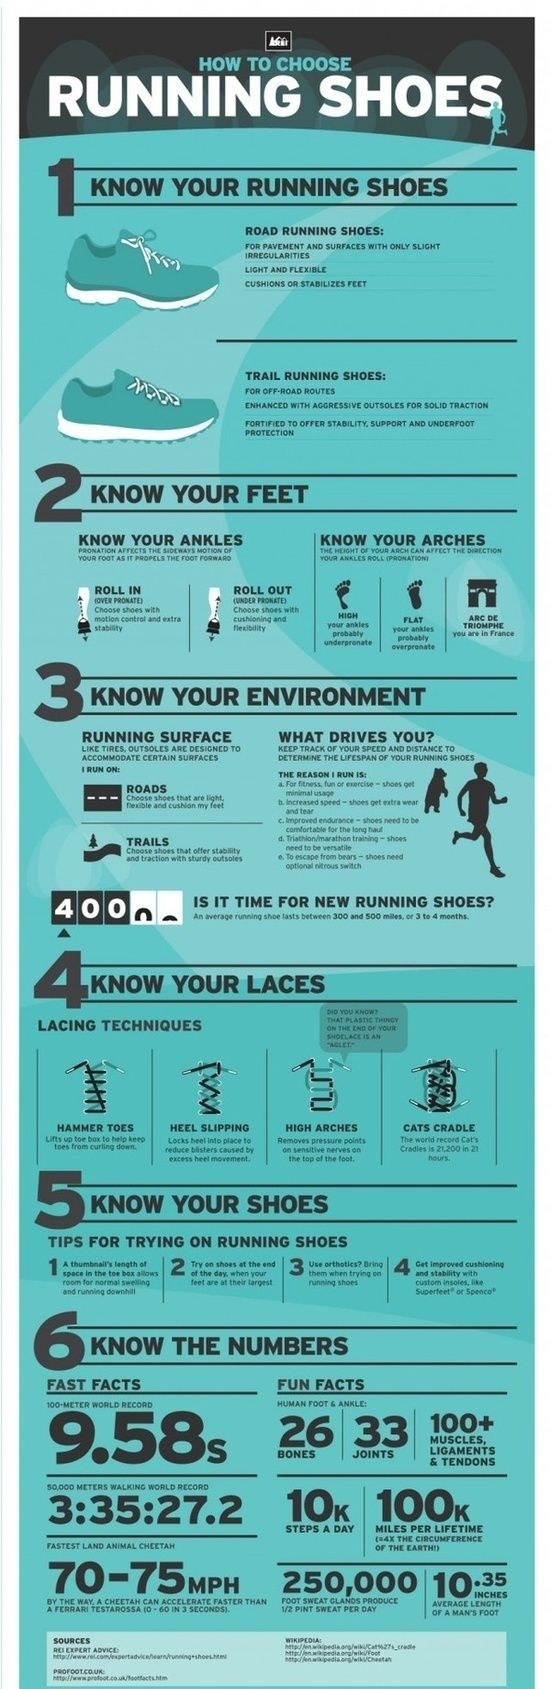 How to Choose Running Shoes Prefect for my sailors to know - Now I'm confused - I have high arches and my ankles always roll out. This says underpronate, not what I gathered from examining shoe soles.